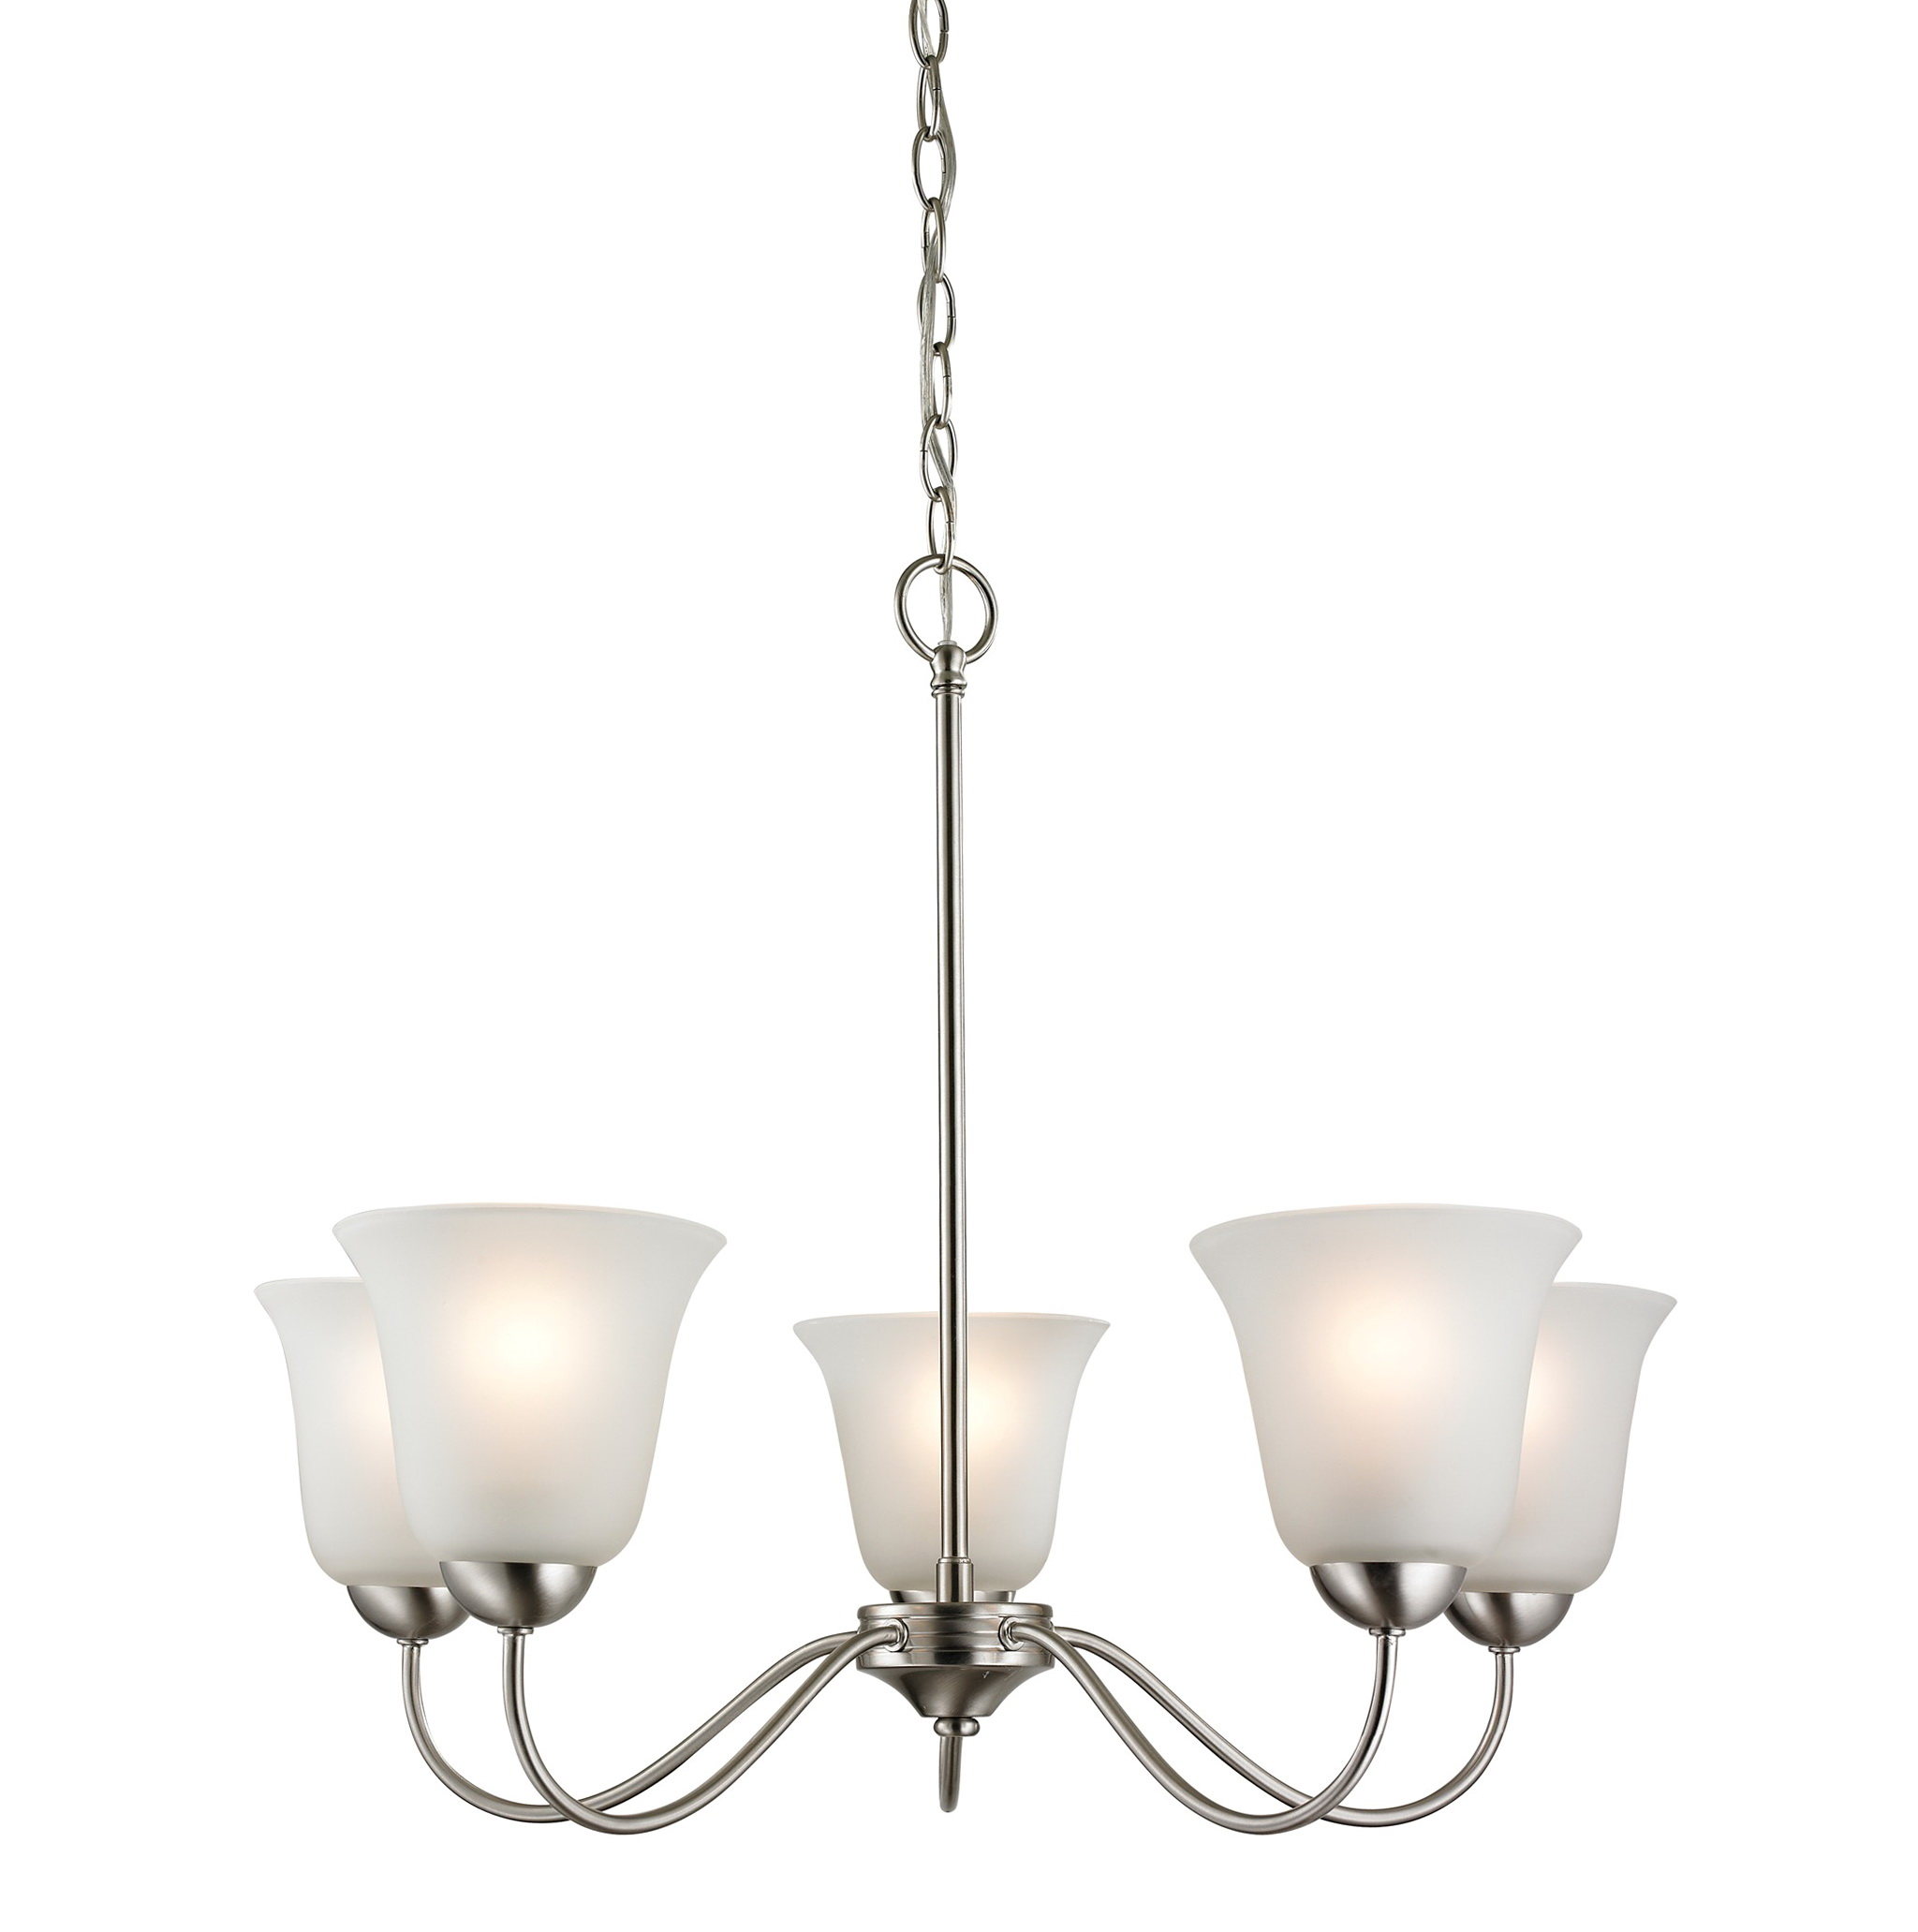 Replacement Chandelier Light Covers | Home Design Ideas